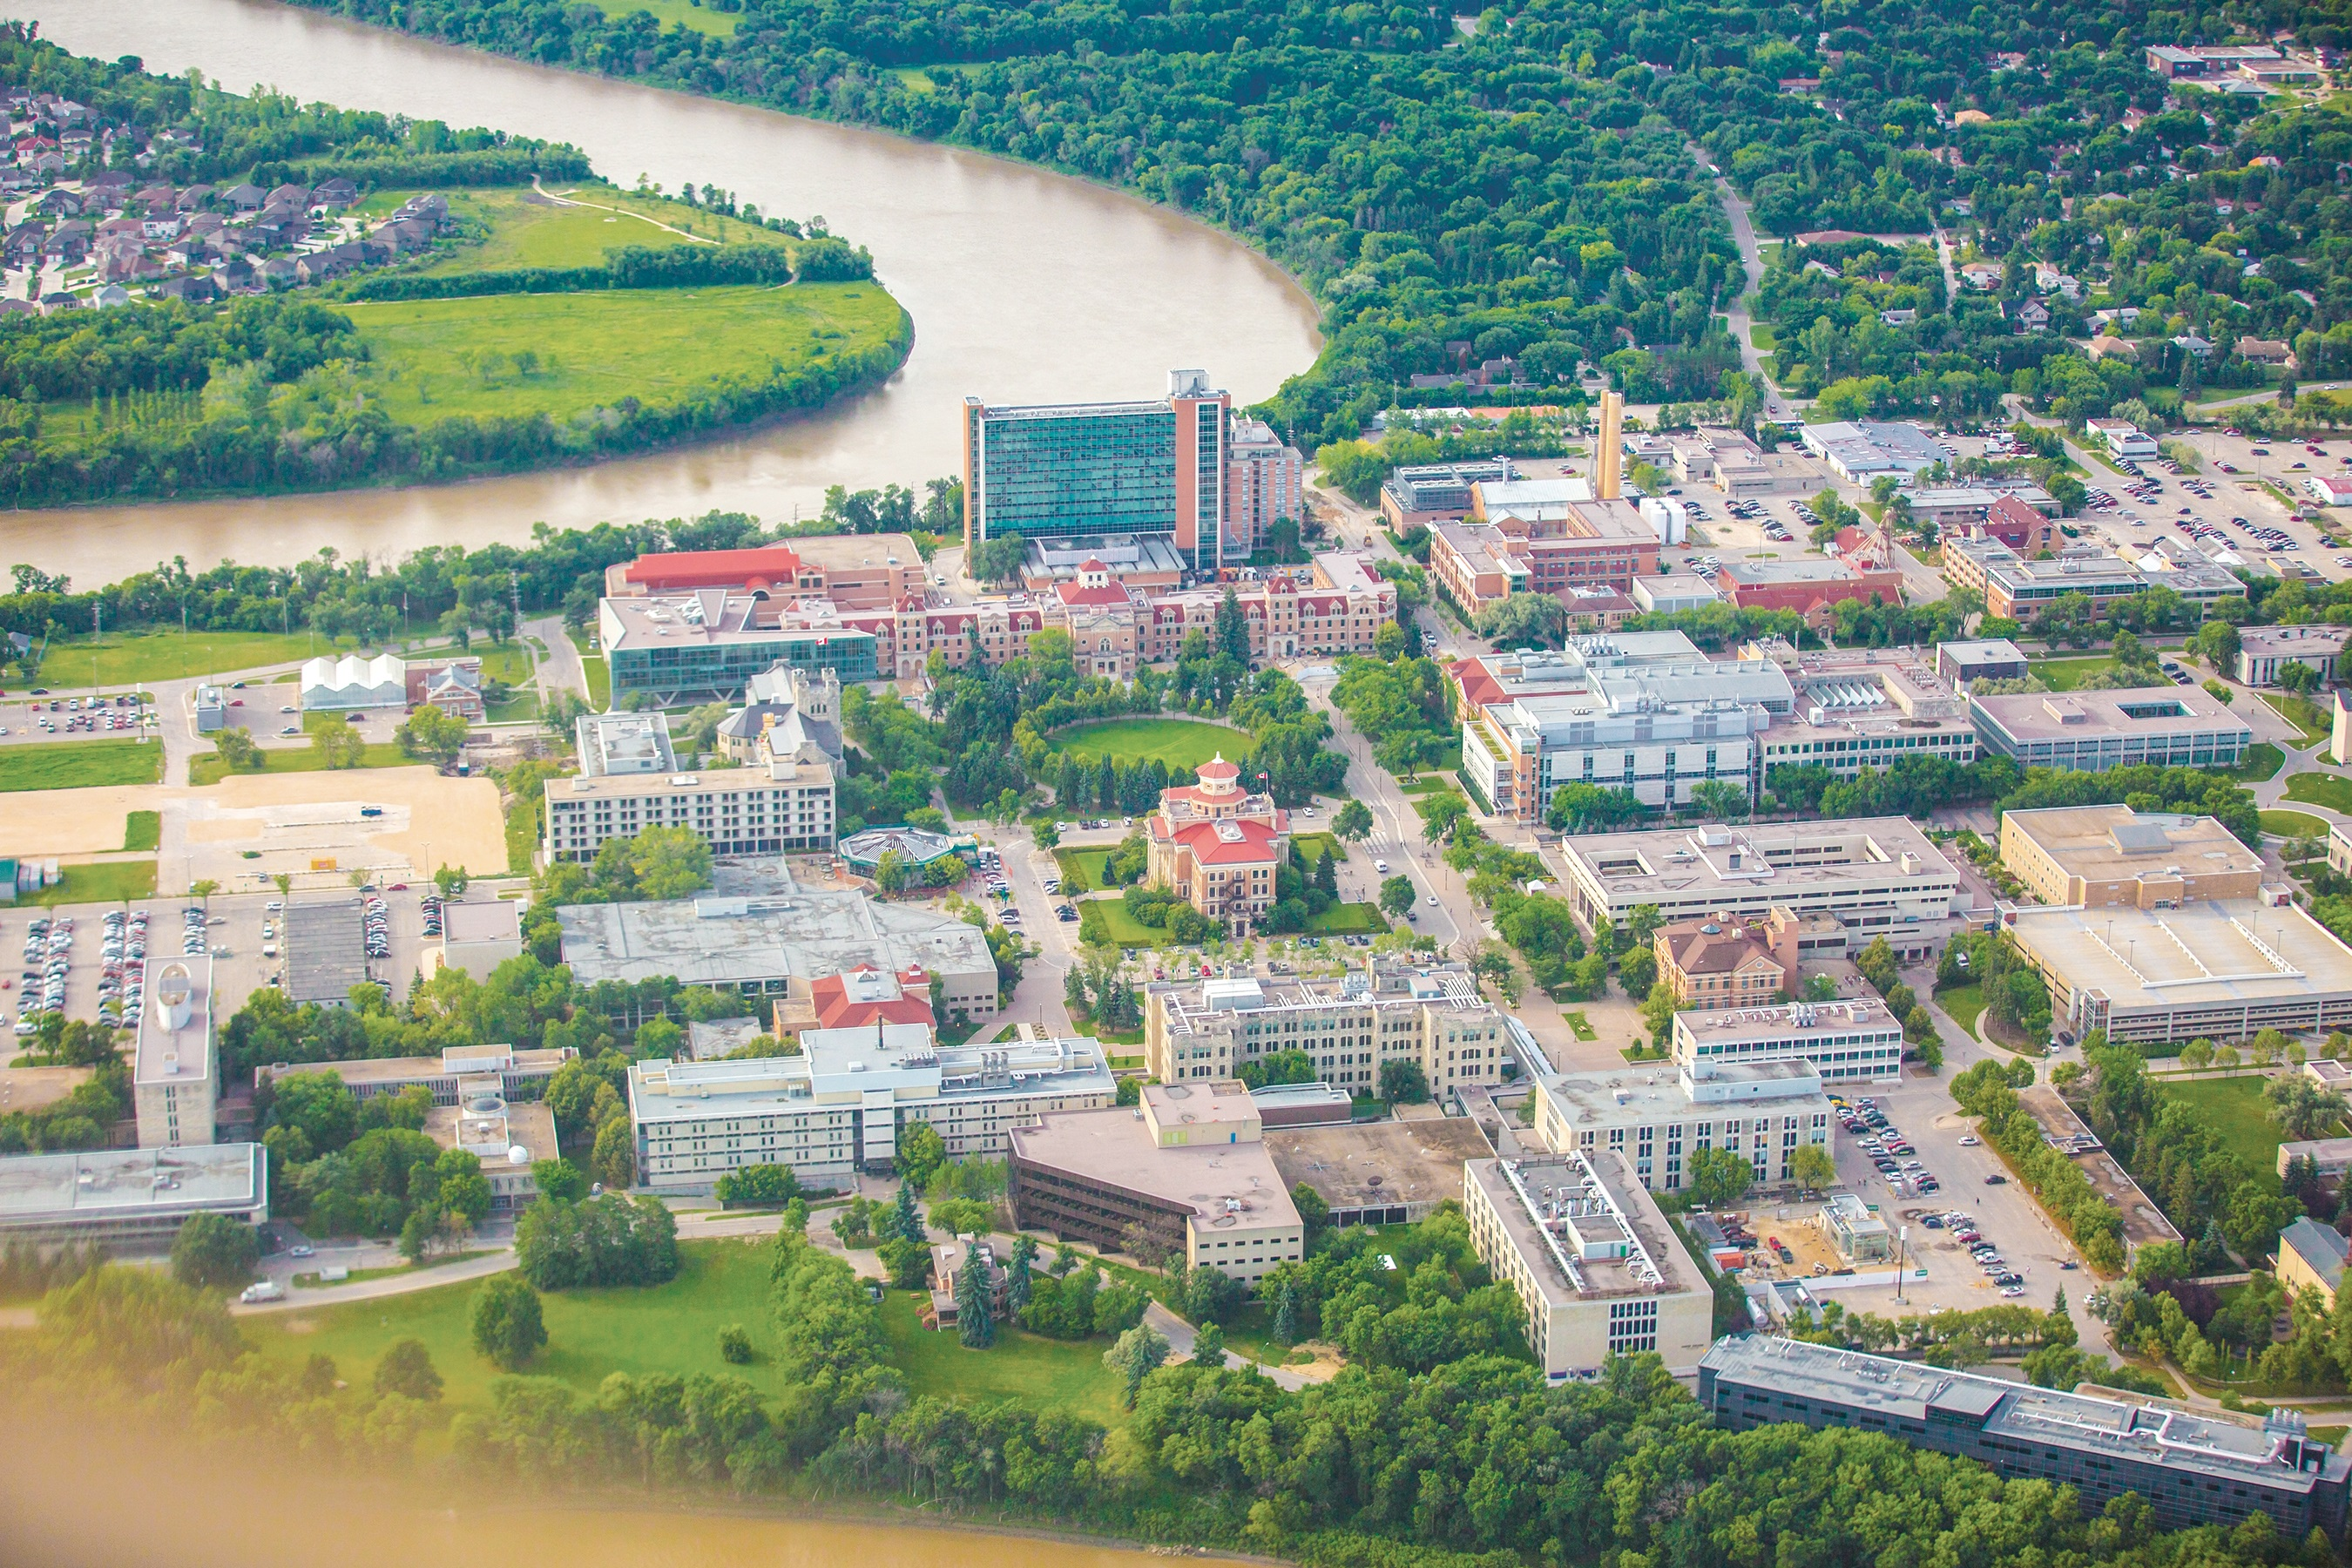 The University of Manitoba welcomes you!